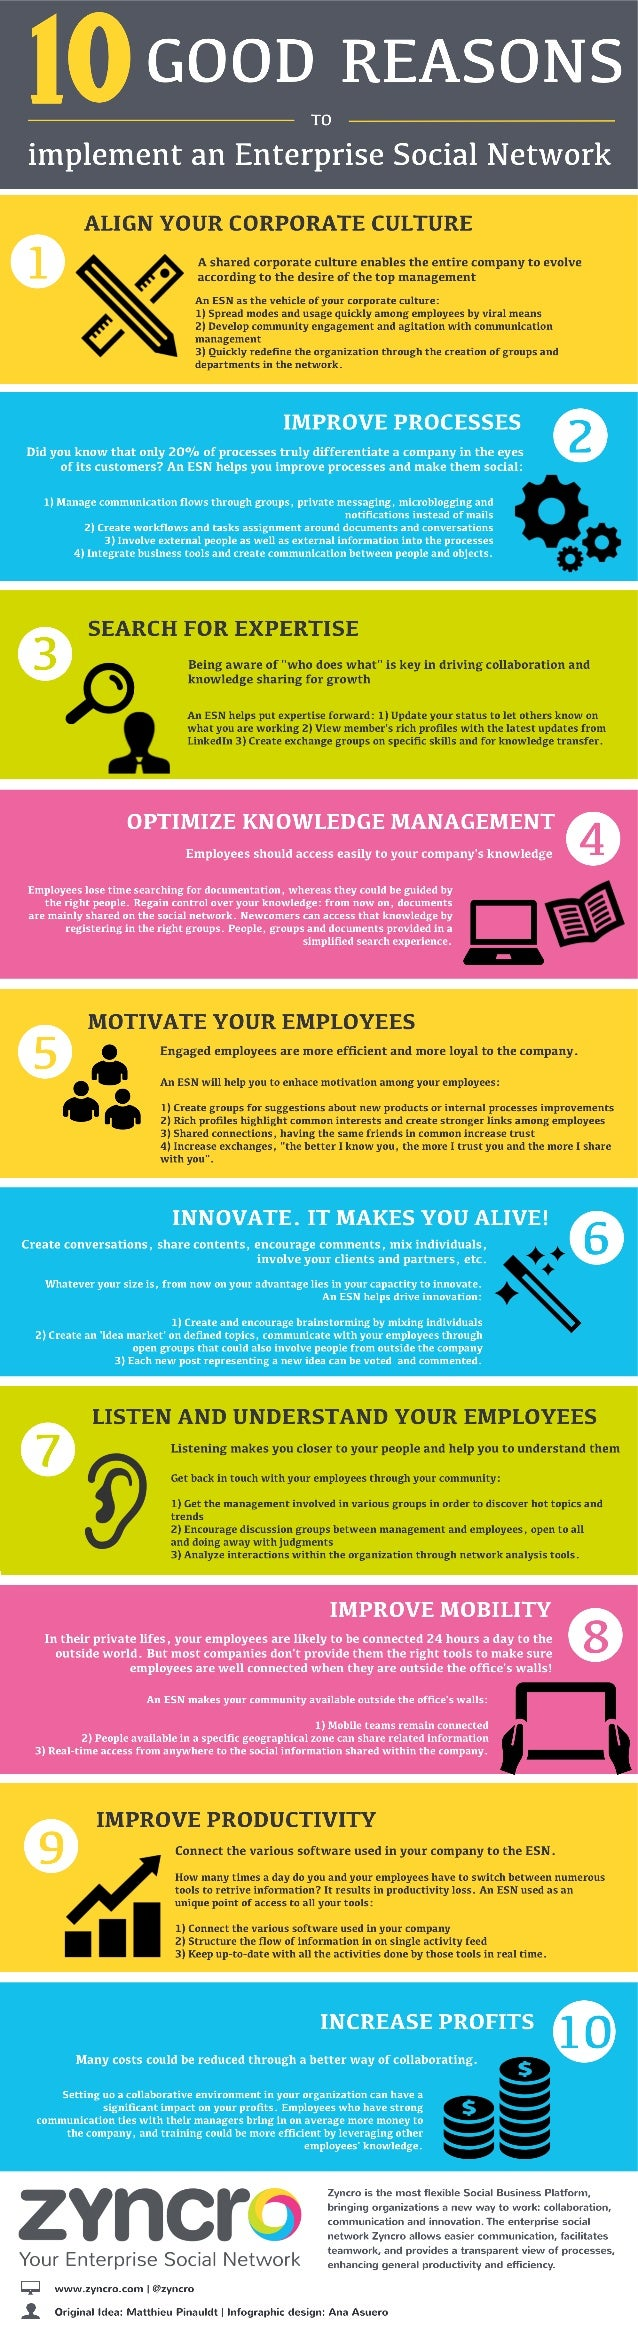 Infographic 10 reasons to implement an enterprise social network